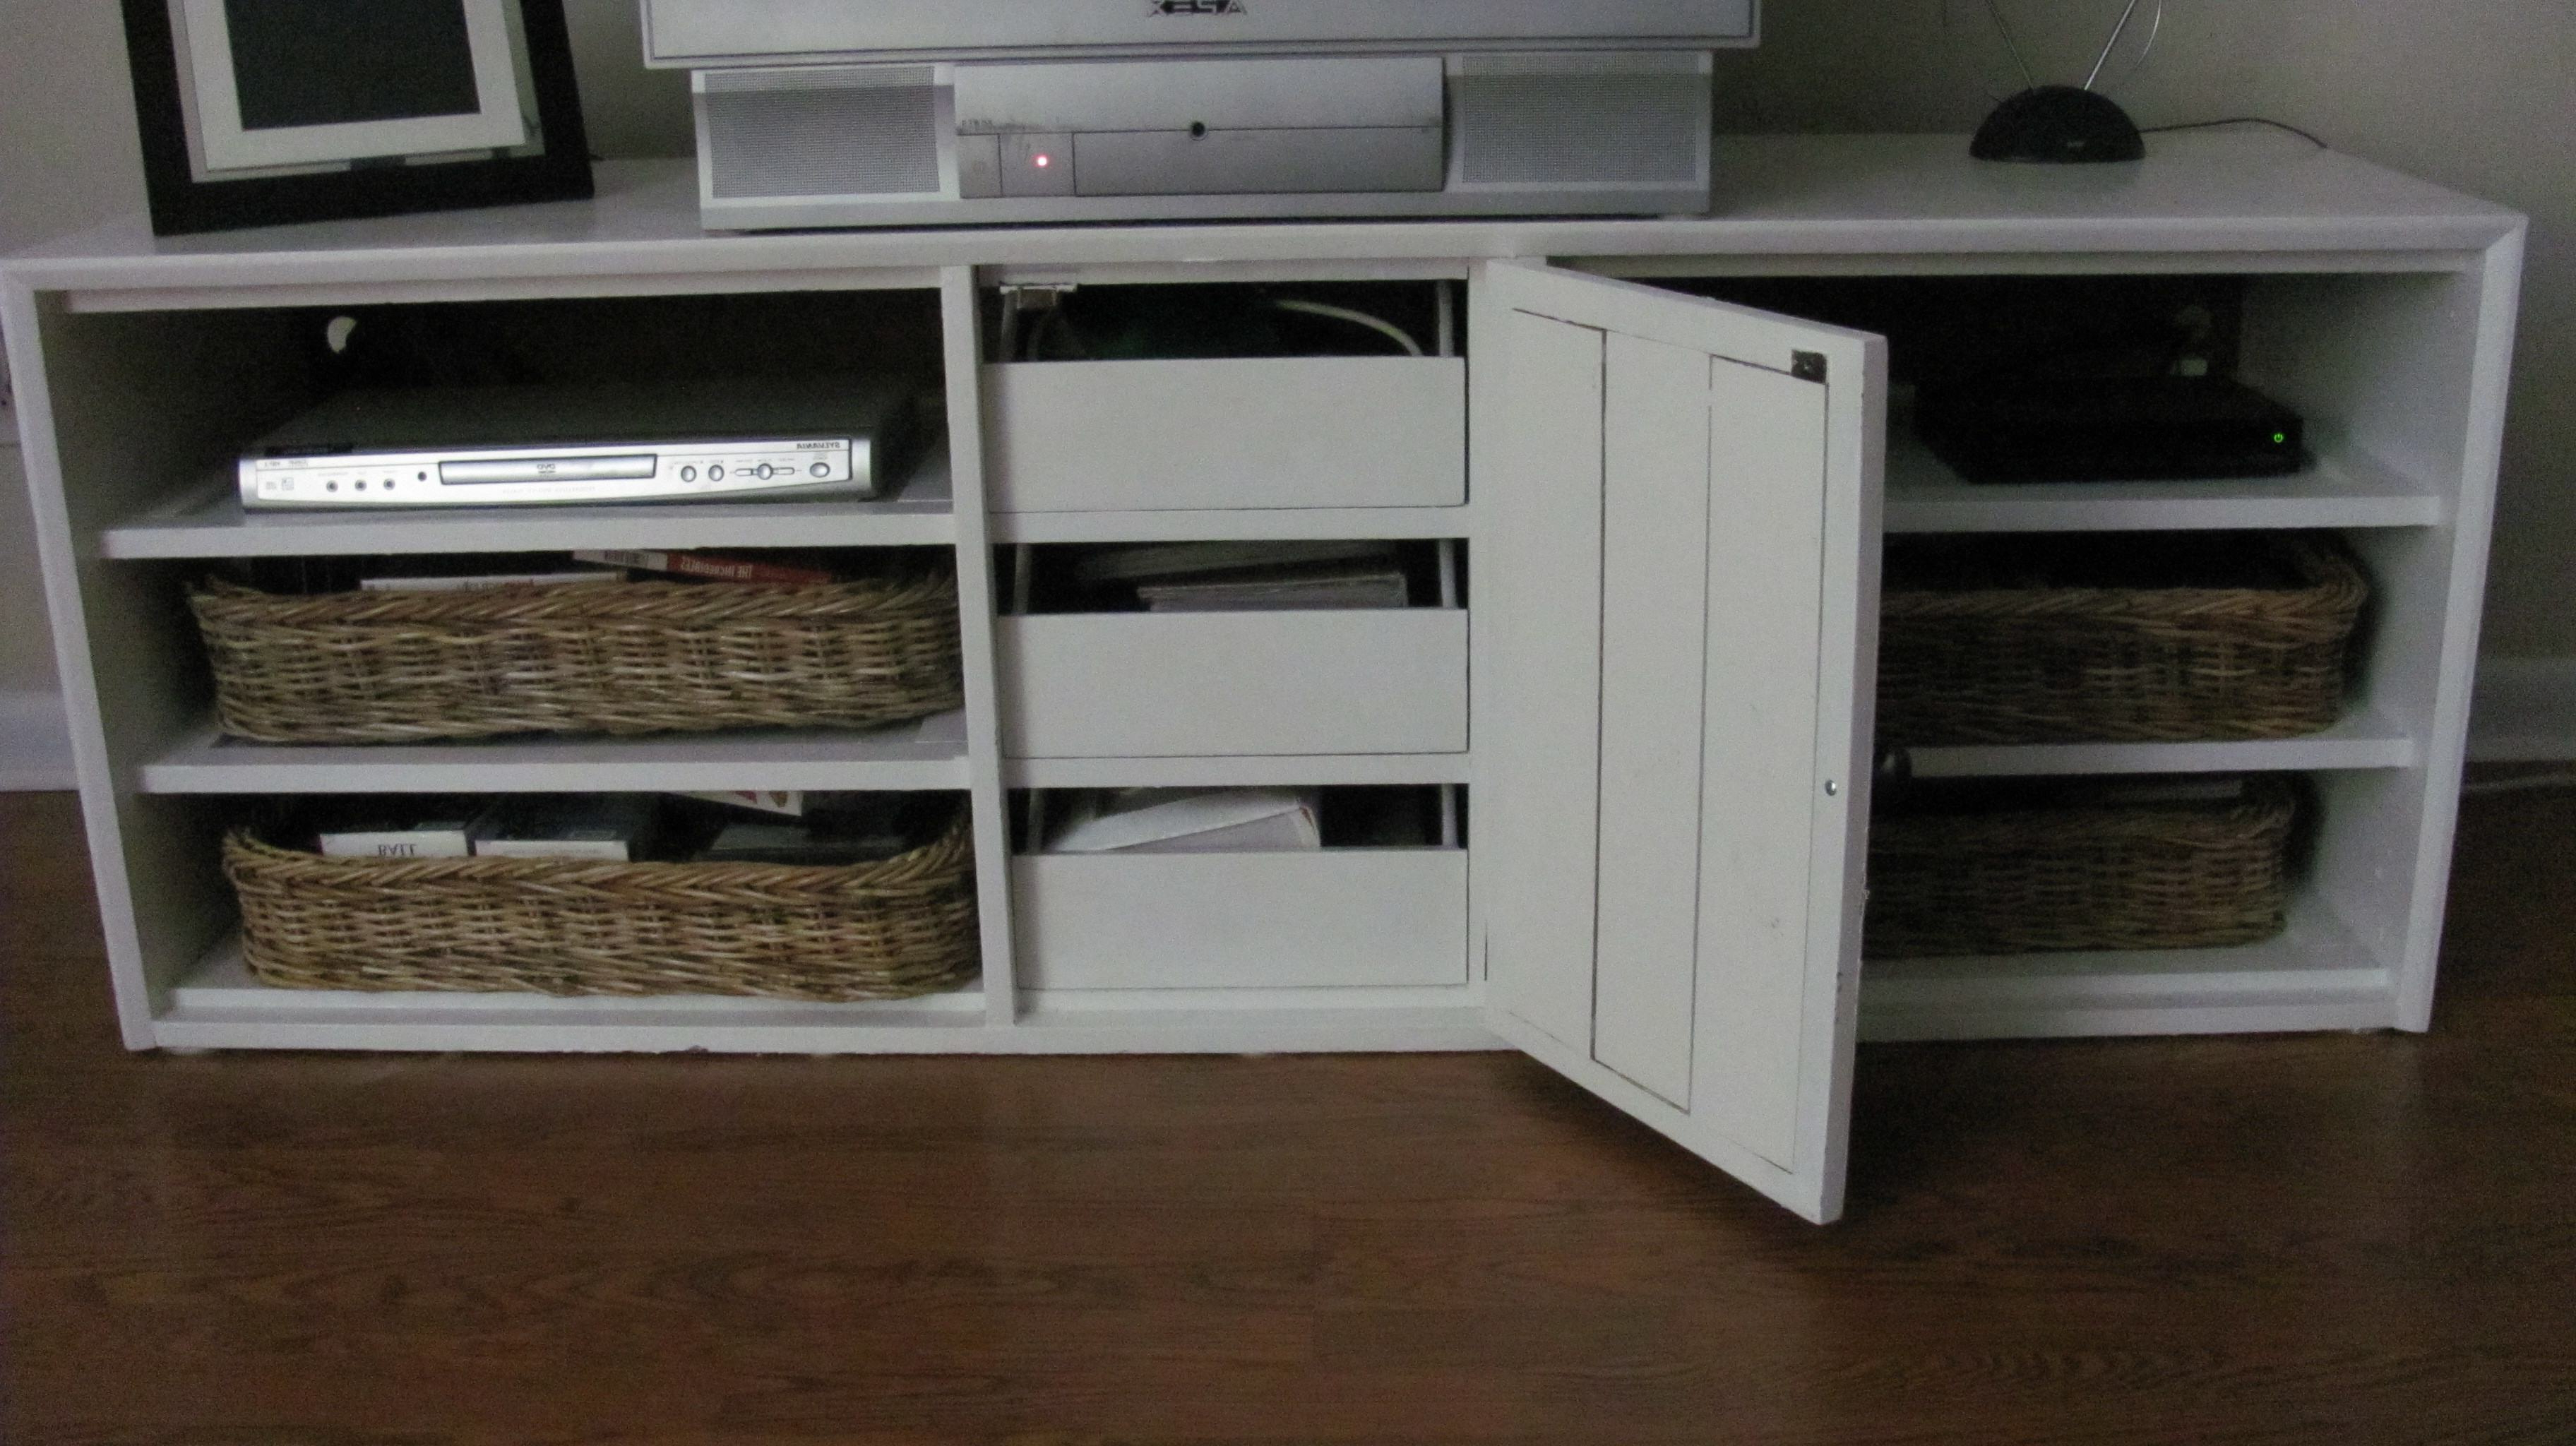 Cakestandlady Regarding Tv Stands With Baskets (View 4 of 20)